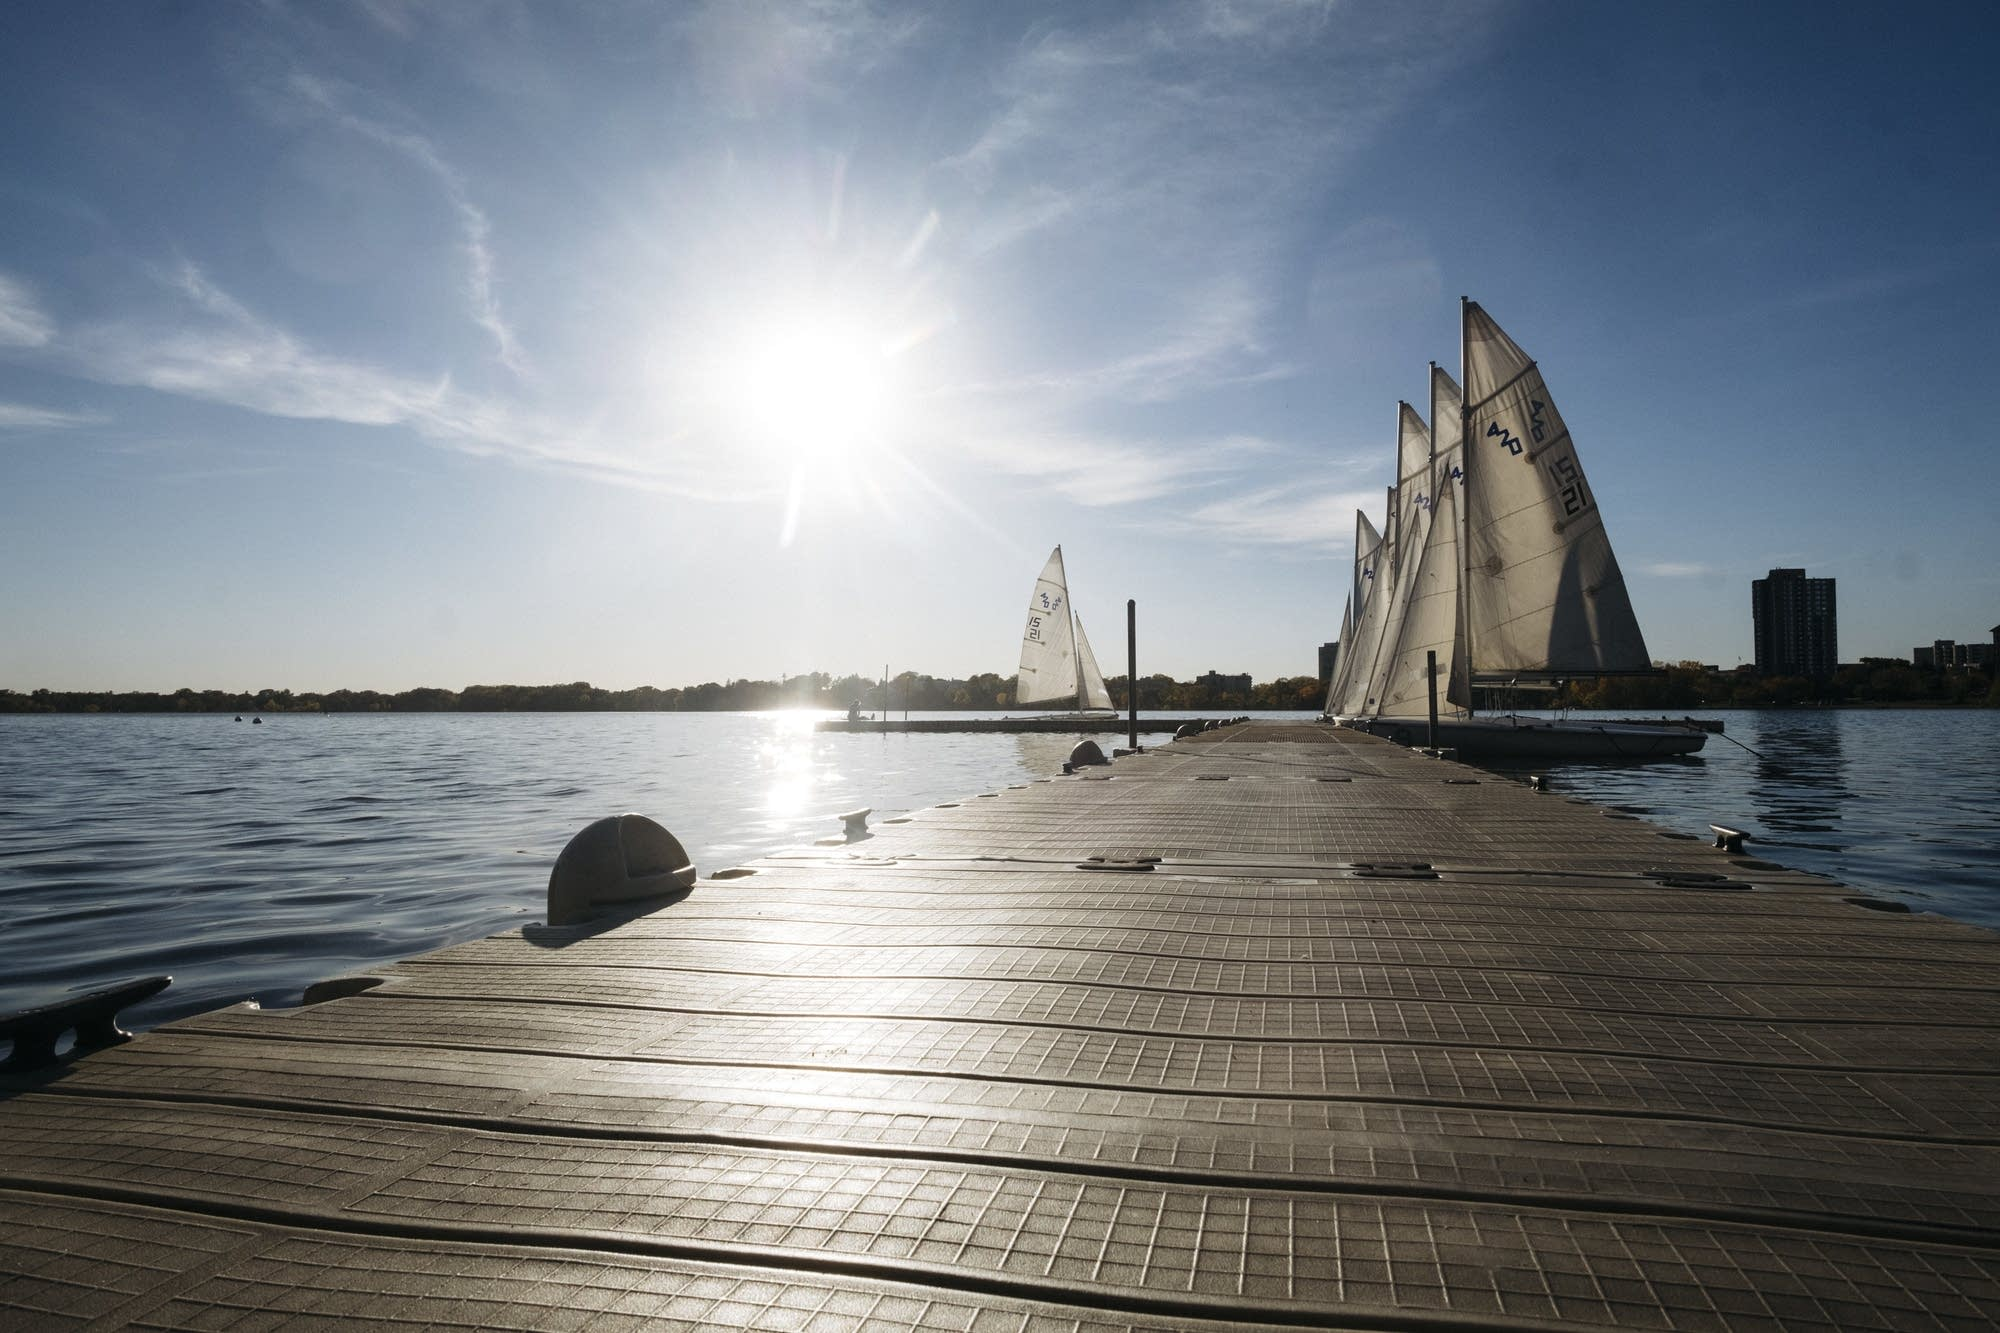 The sun shines on the sailboat dock on Lake Calhoun.